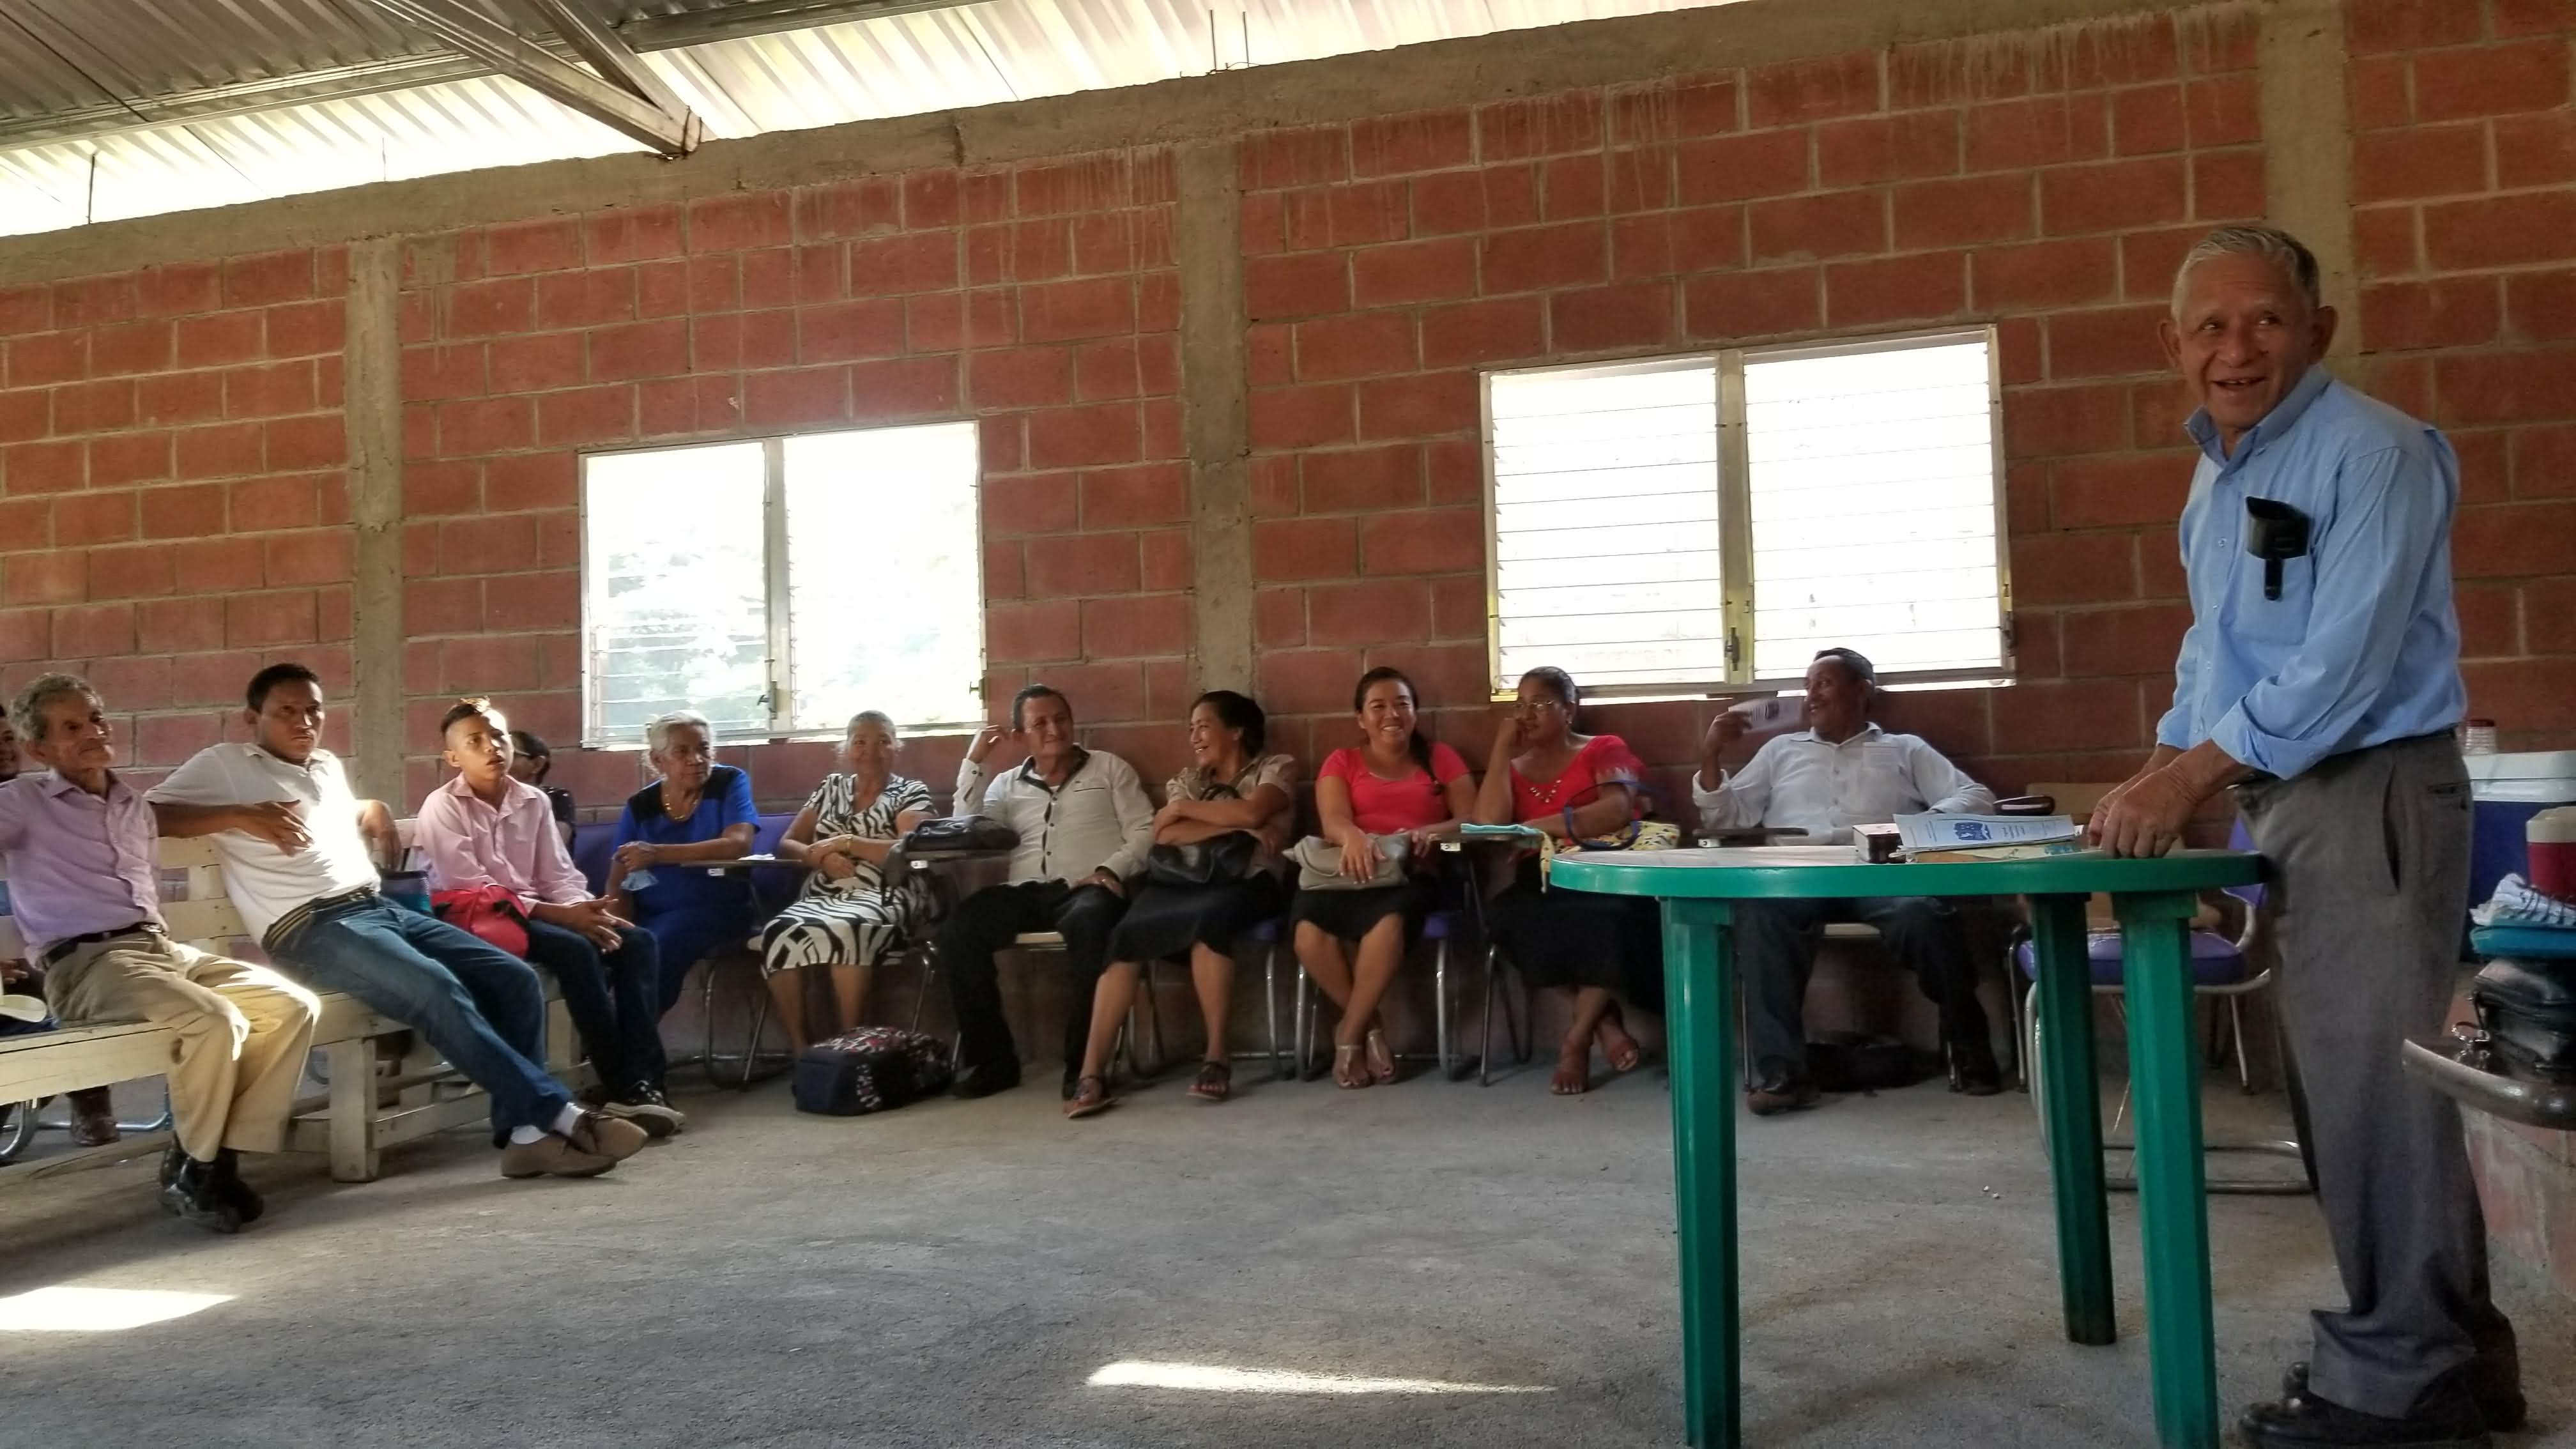 Pastor Edin Samayoa leads a workshop in the Moropocay region about Presbyterian church governance and training for deacons and elders.